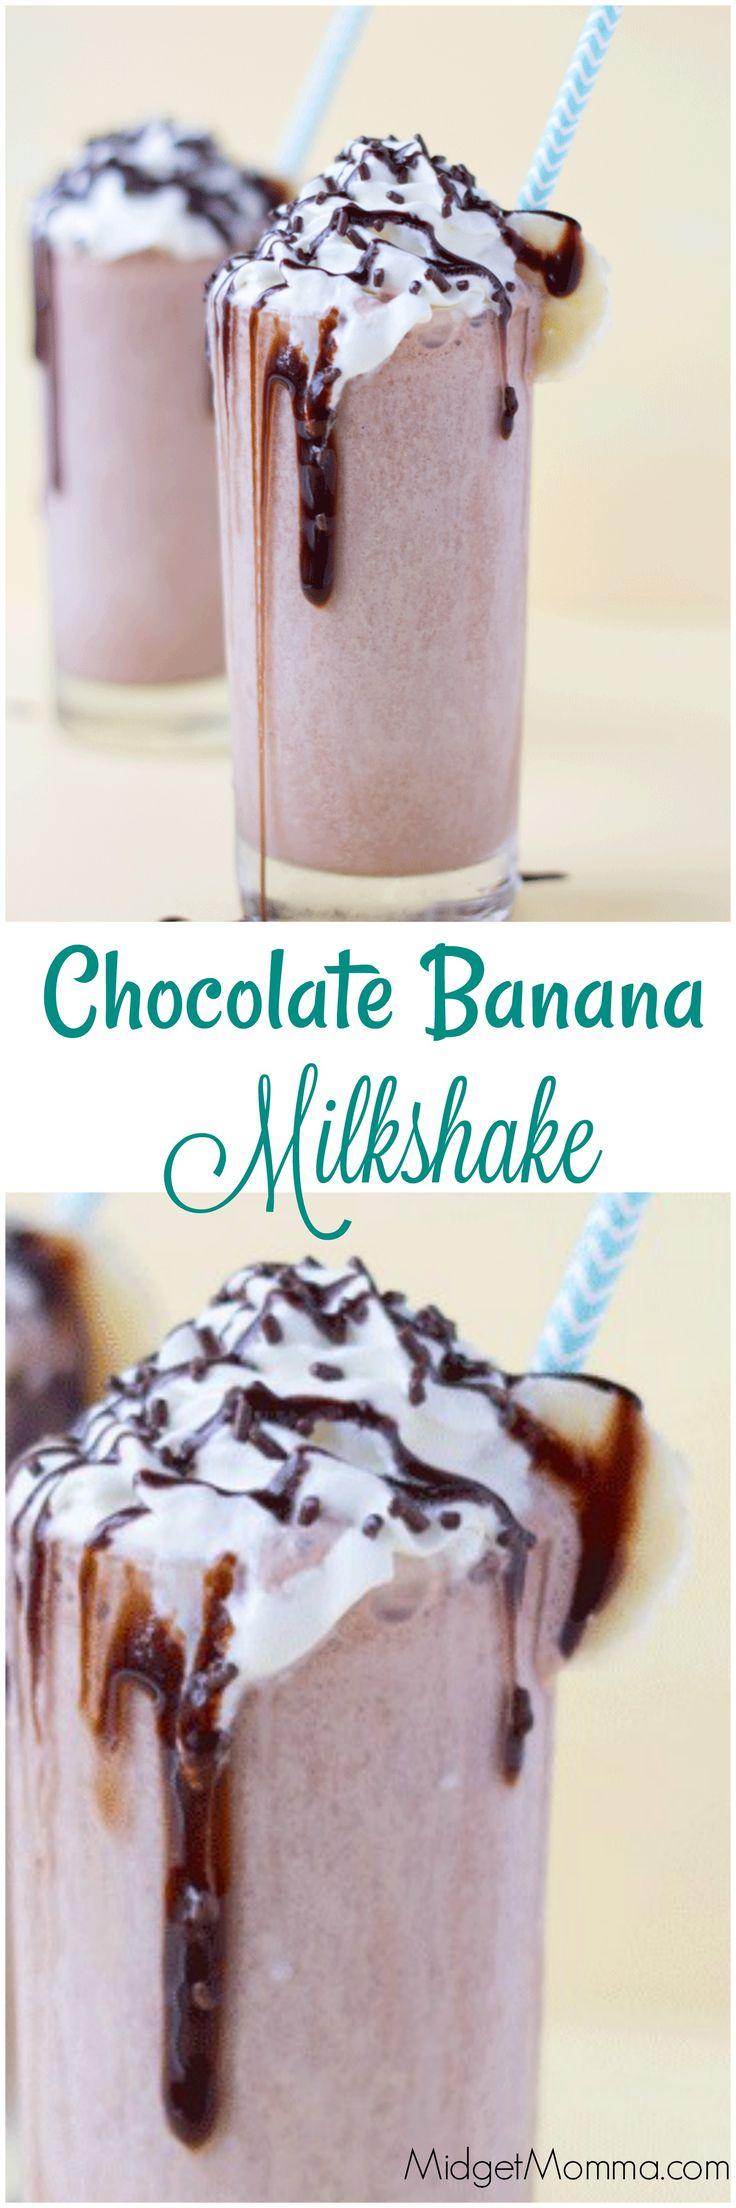 Chocolate Banana Milkshake. Chocolate and banana is one amazing combo and this chocolate banana milkshake is one that will always be a hit!